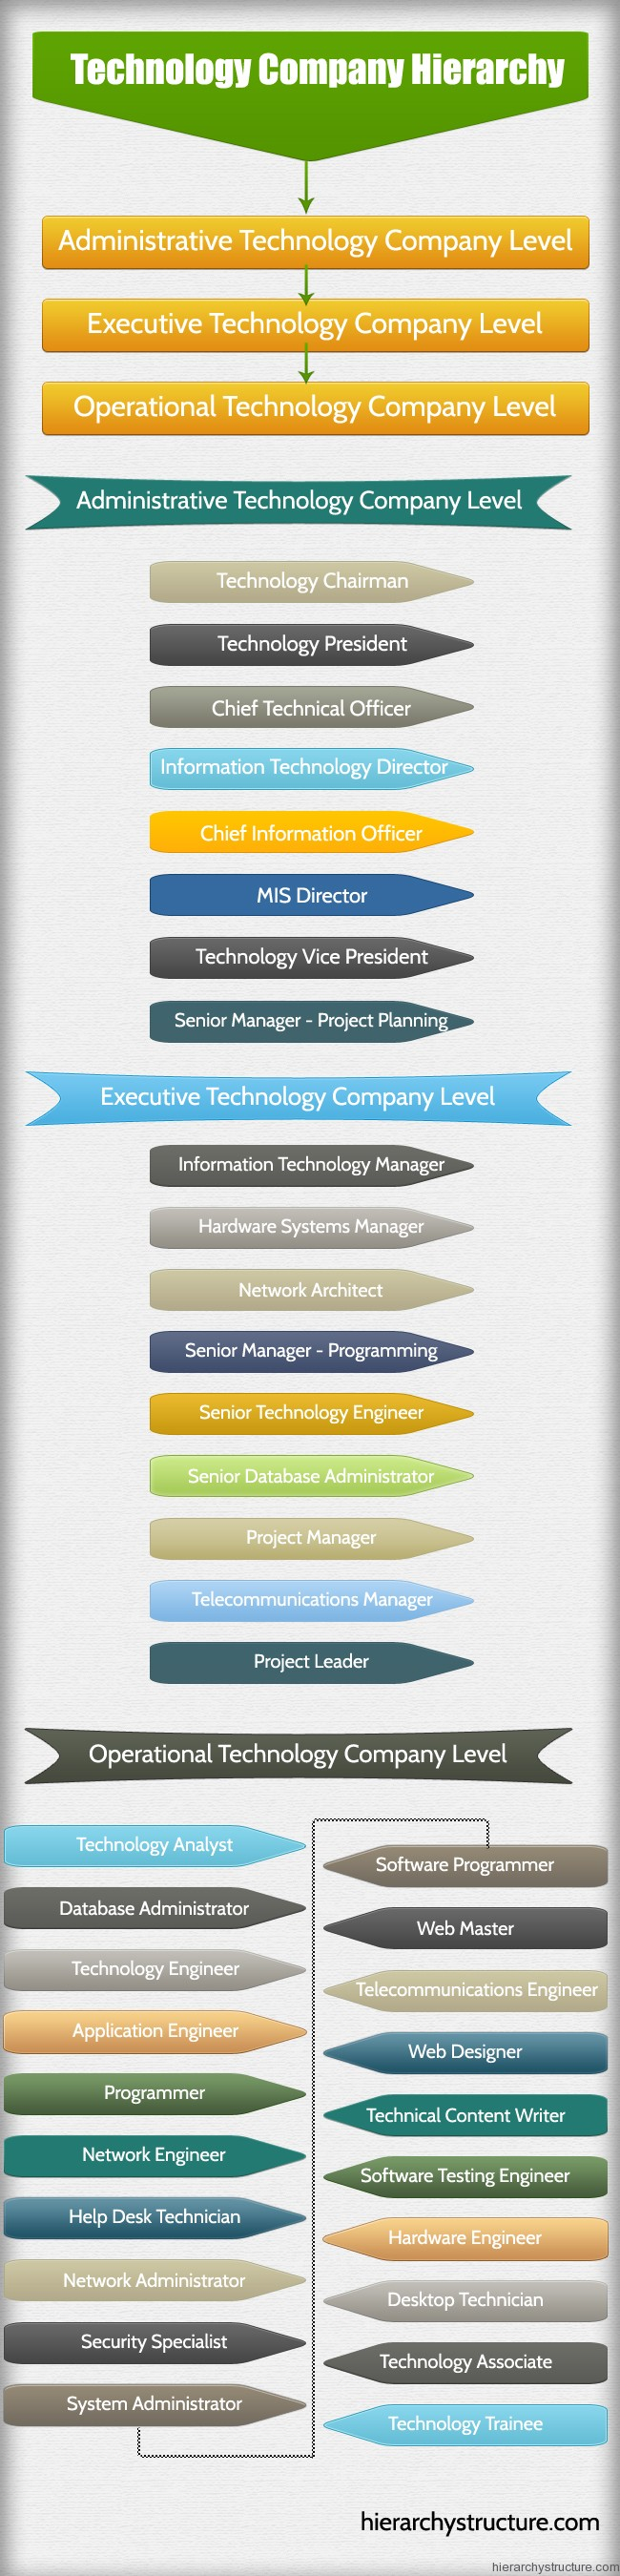 Technology Company Hierarchy